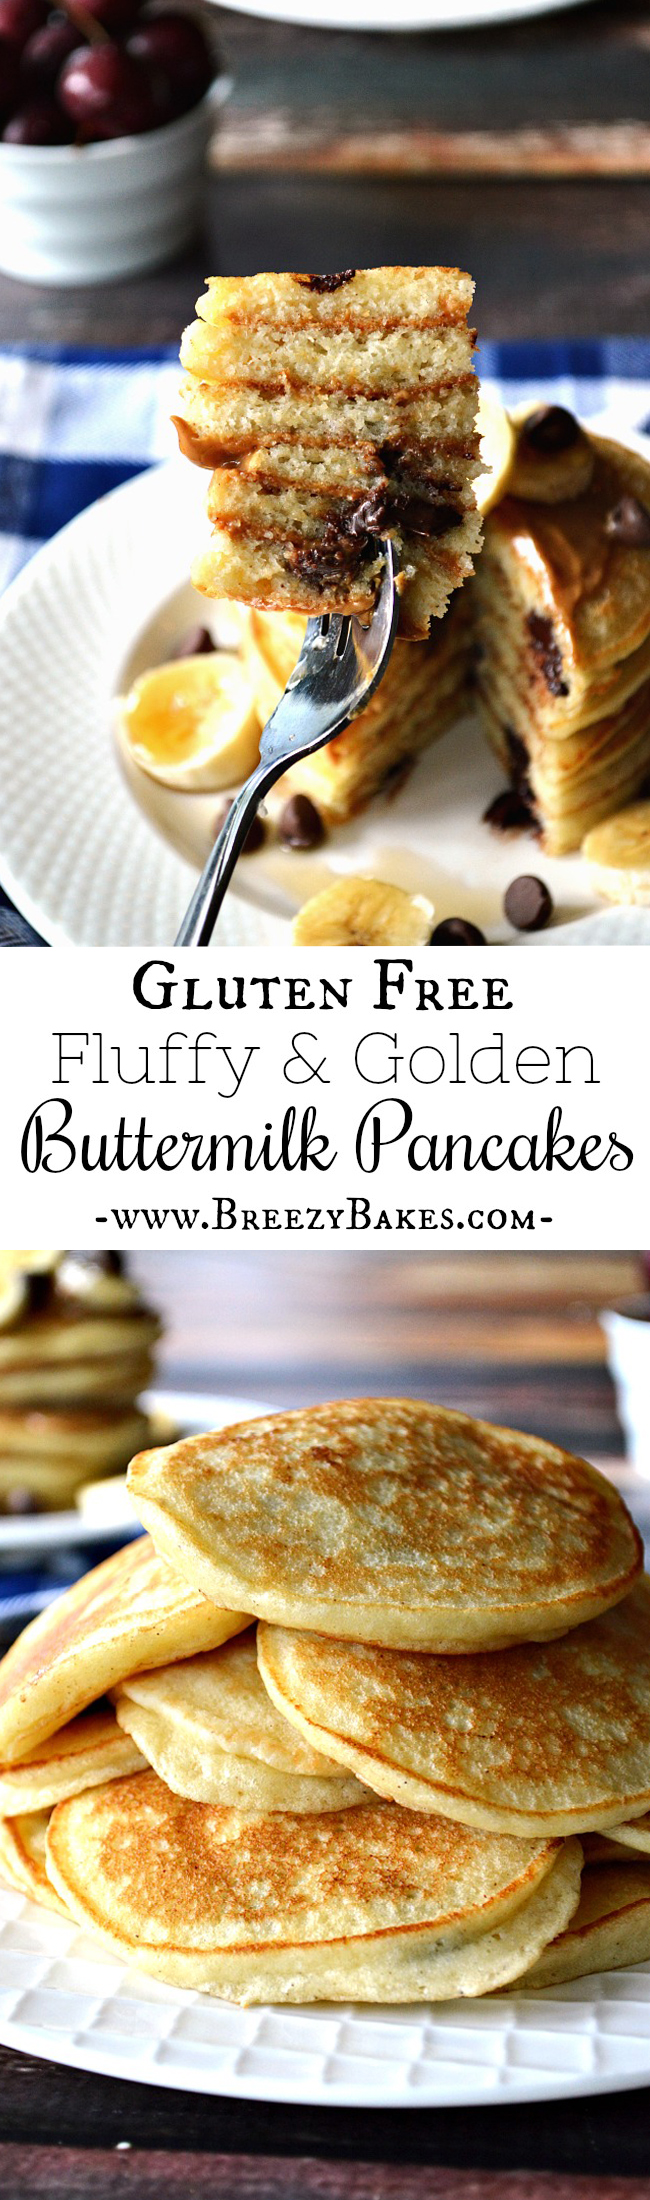 Start your day with a batch of Gluten Free Fluffy Buttermilk Pancakes. They're a blank canvas for your favorite pancake toppings and spreads. Rise and shine sunshine!